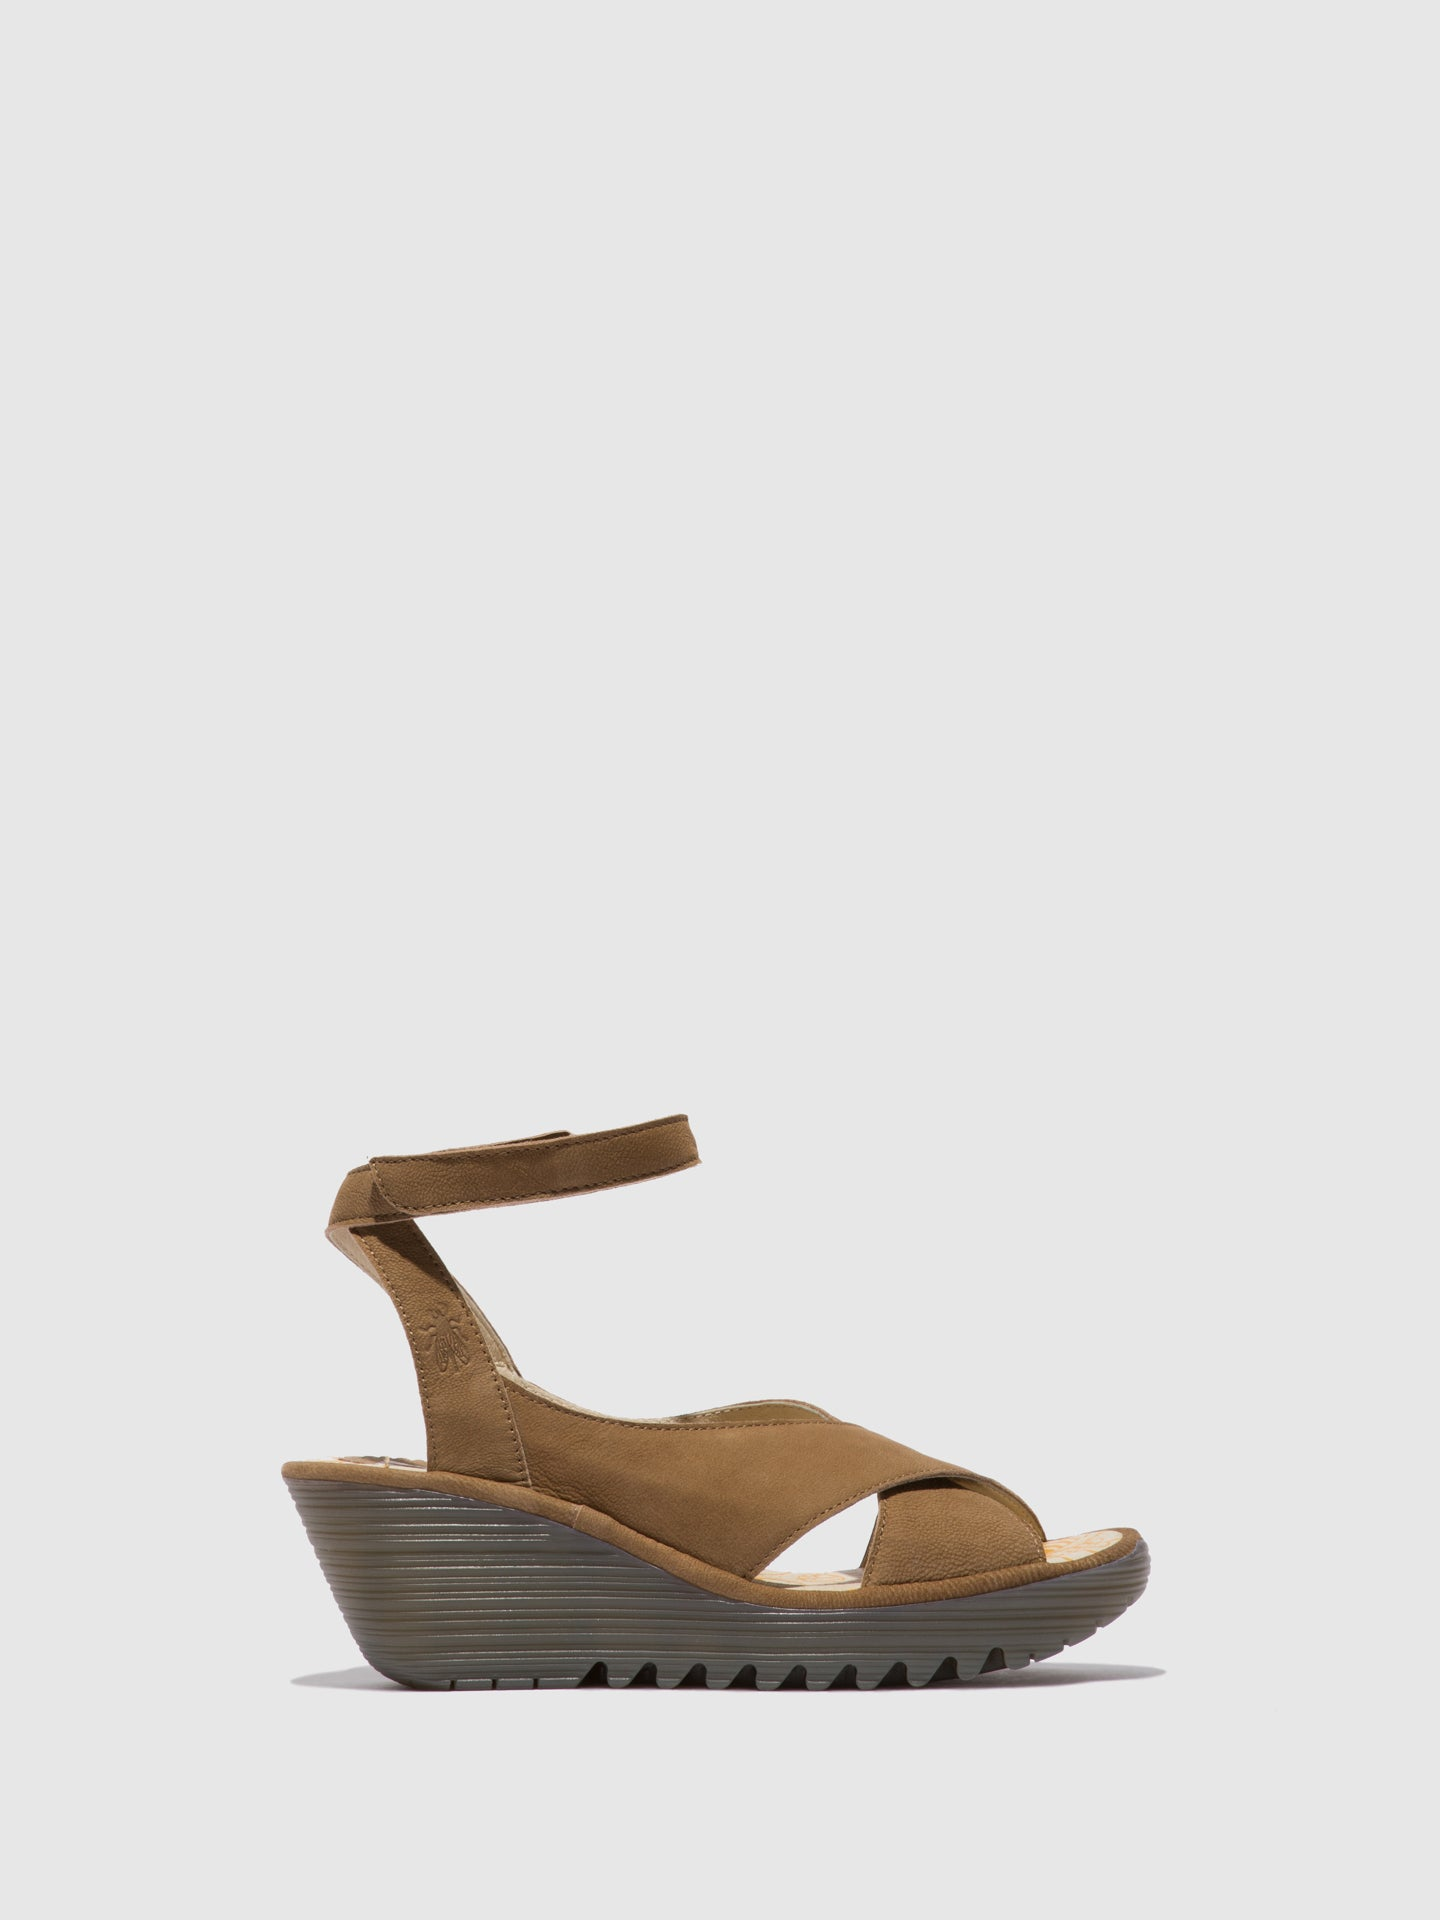 Fly London Ankle Strap Sandals YIVI308FLY CUPIDO SAND